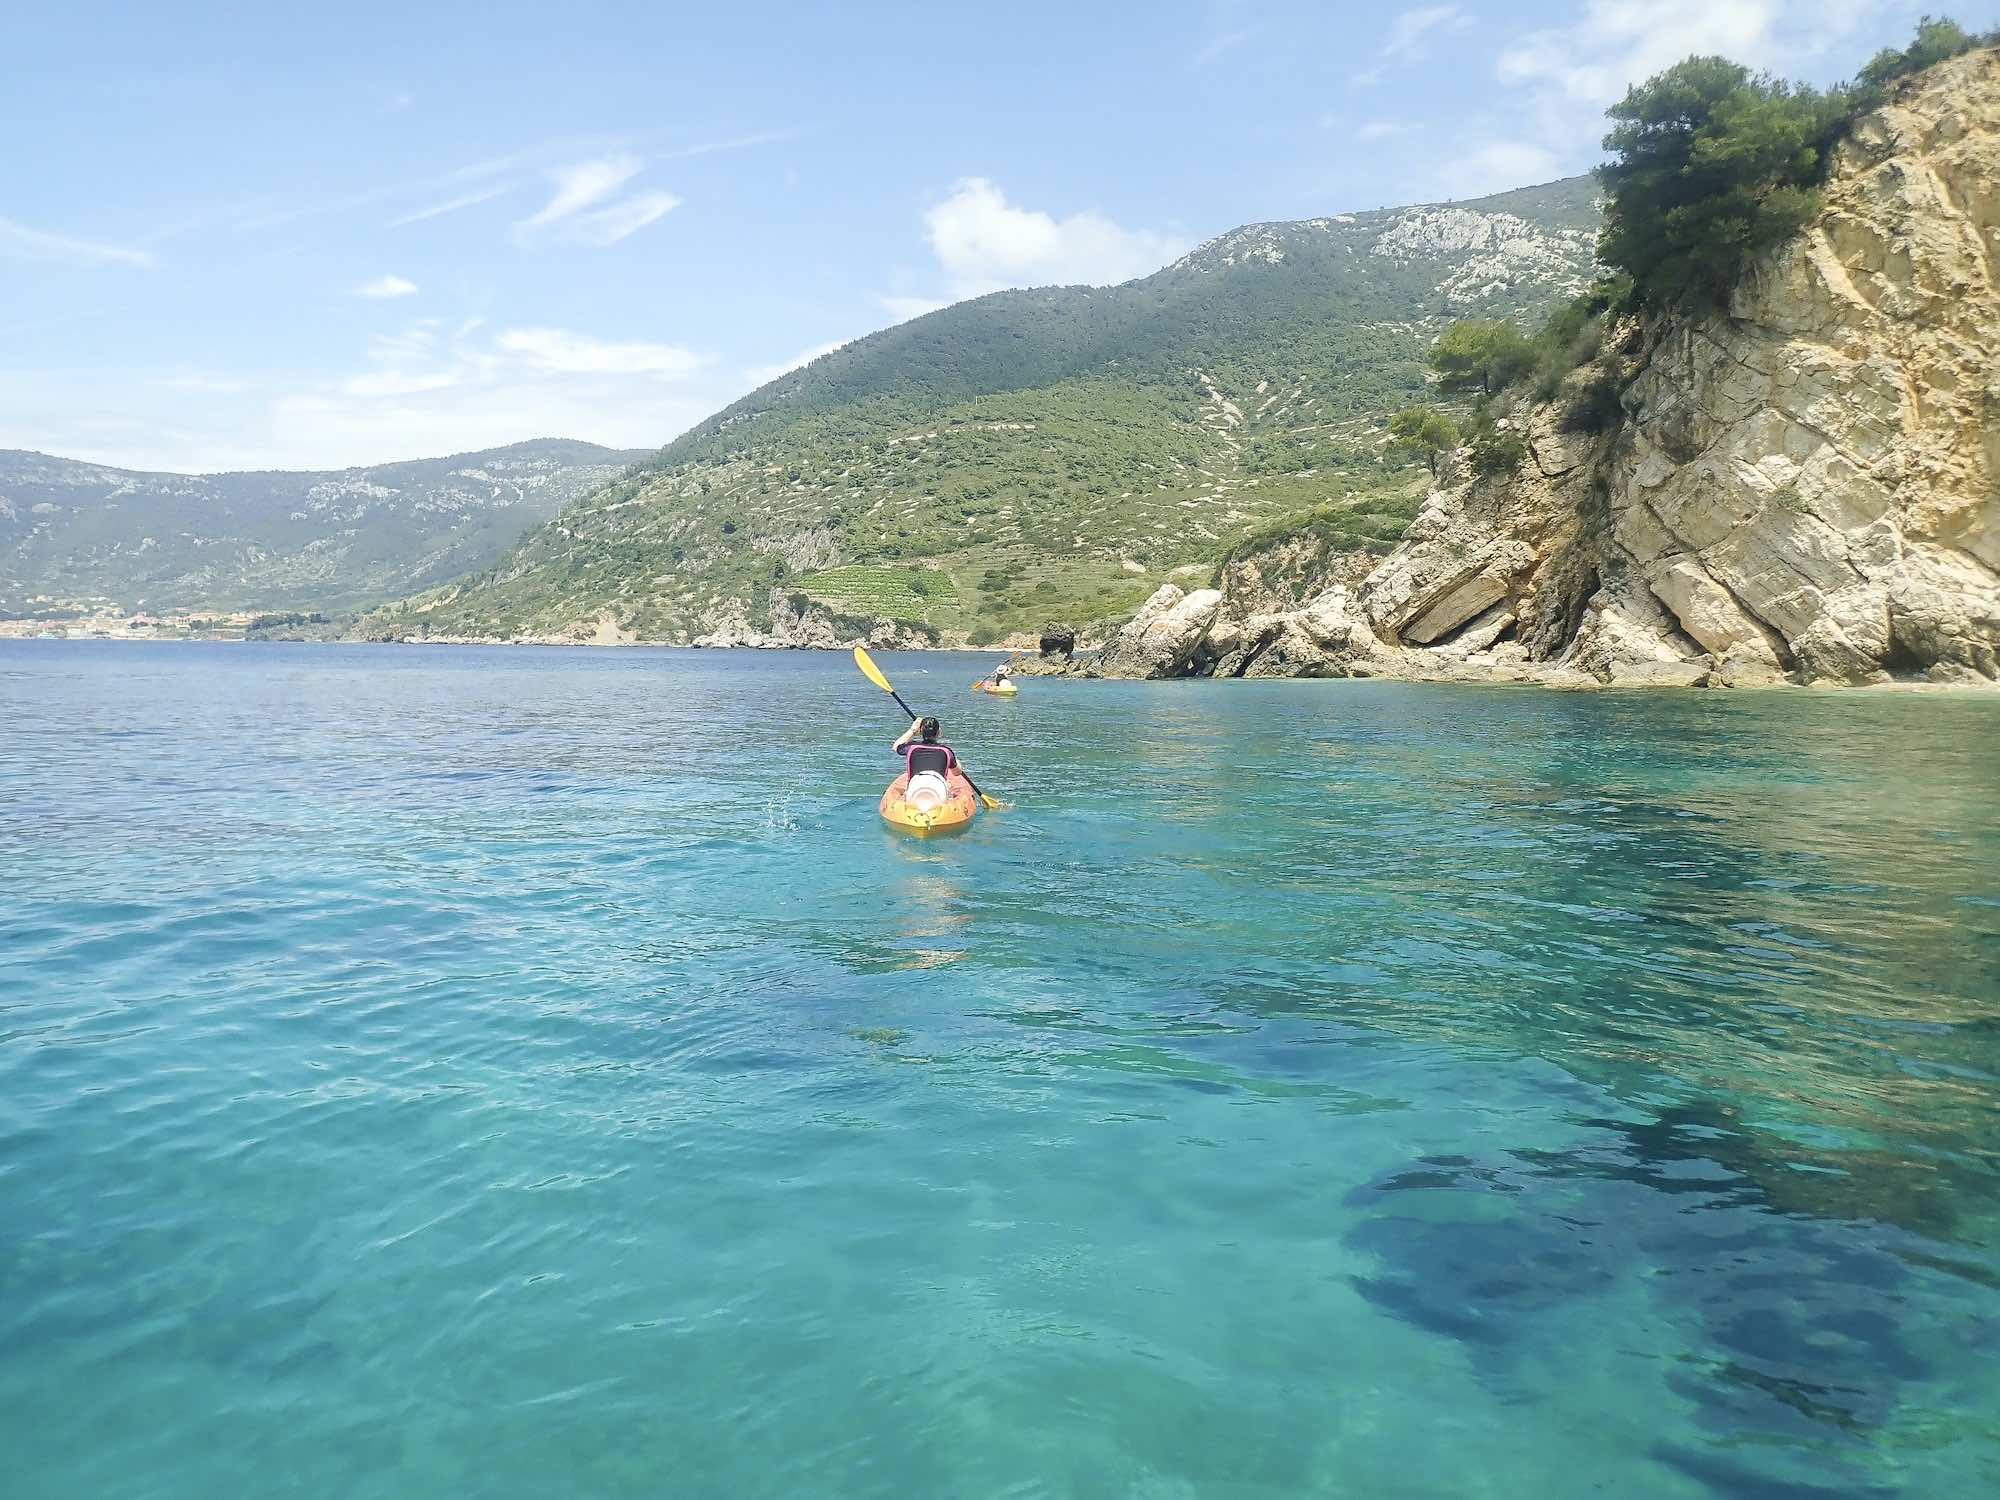 Kayaking on Vis Island